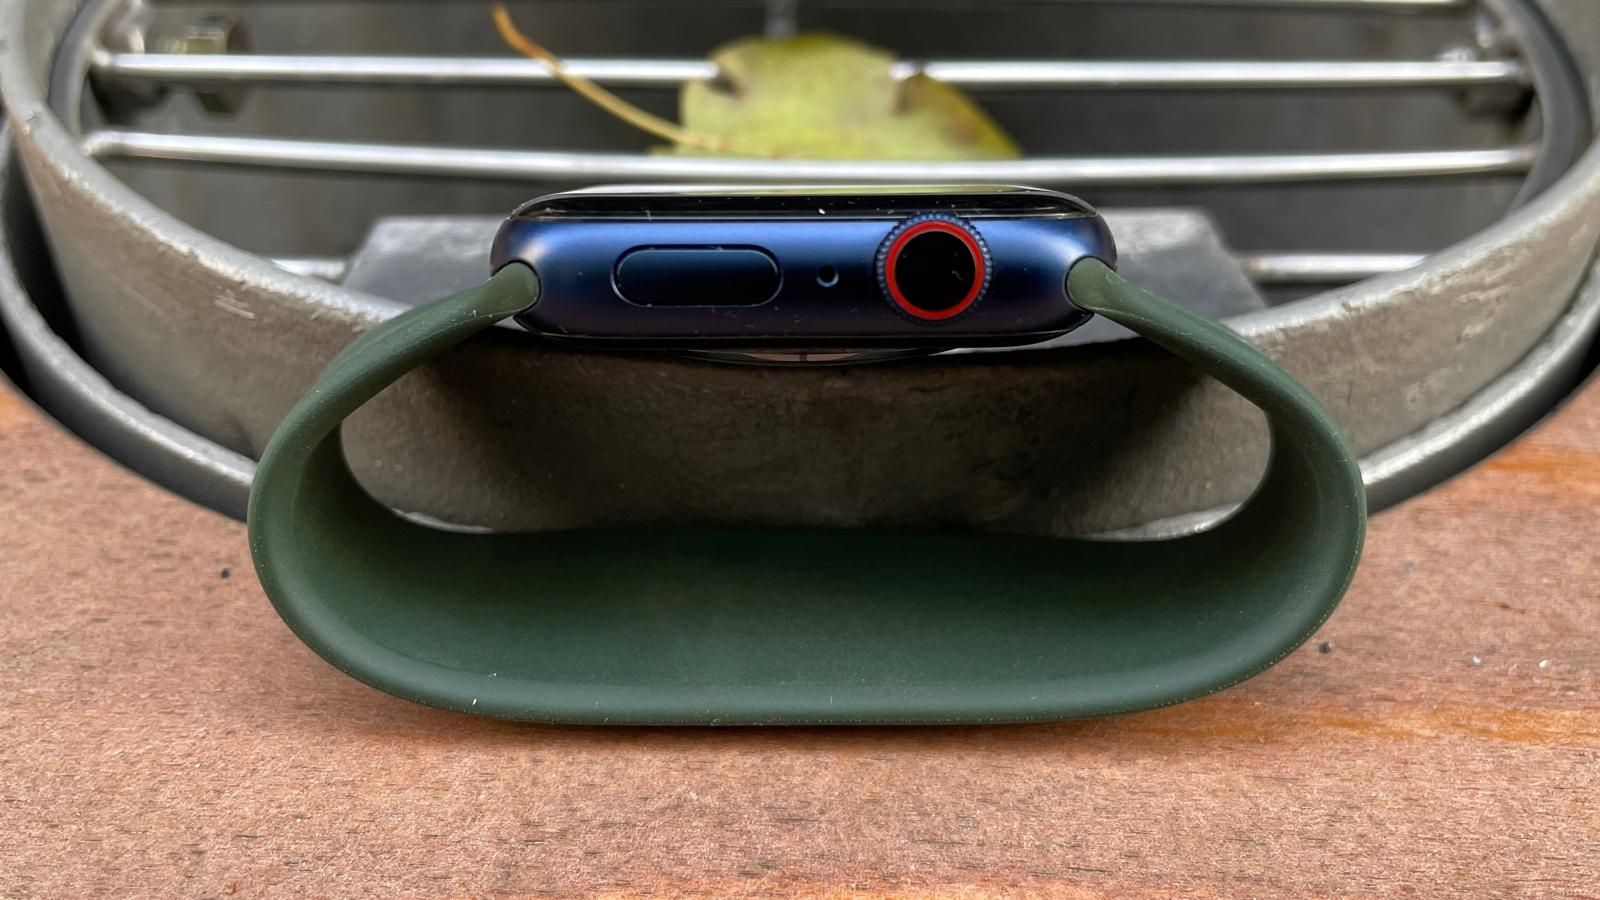 Apple Watch Series 6 Review 02